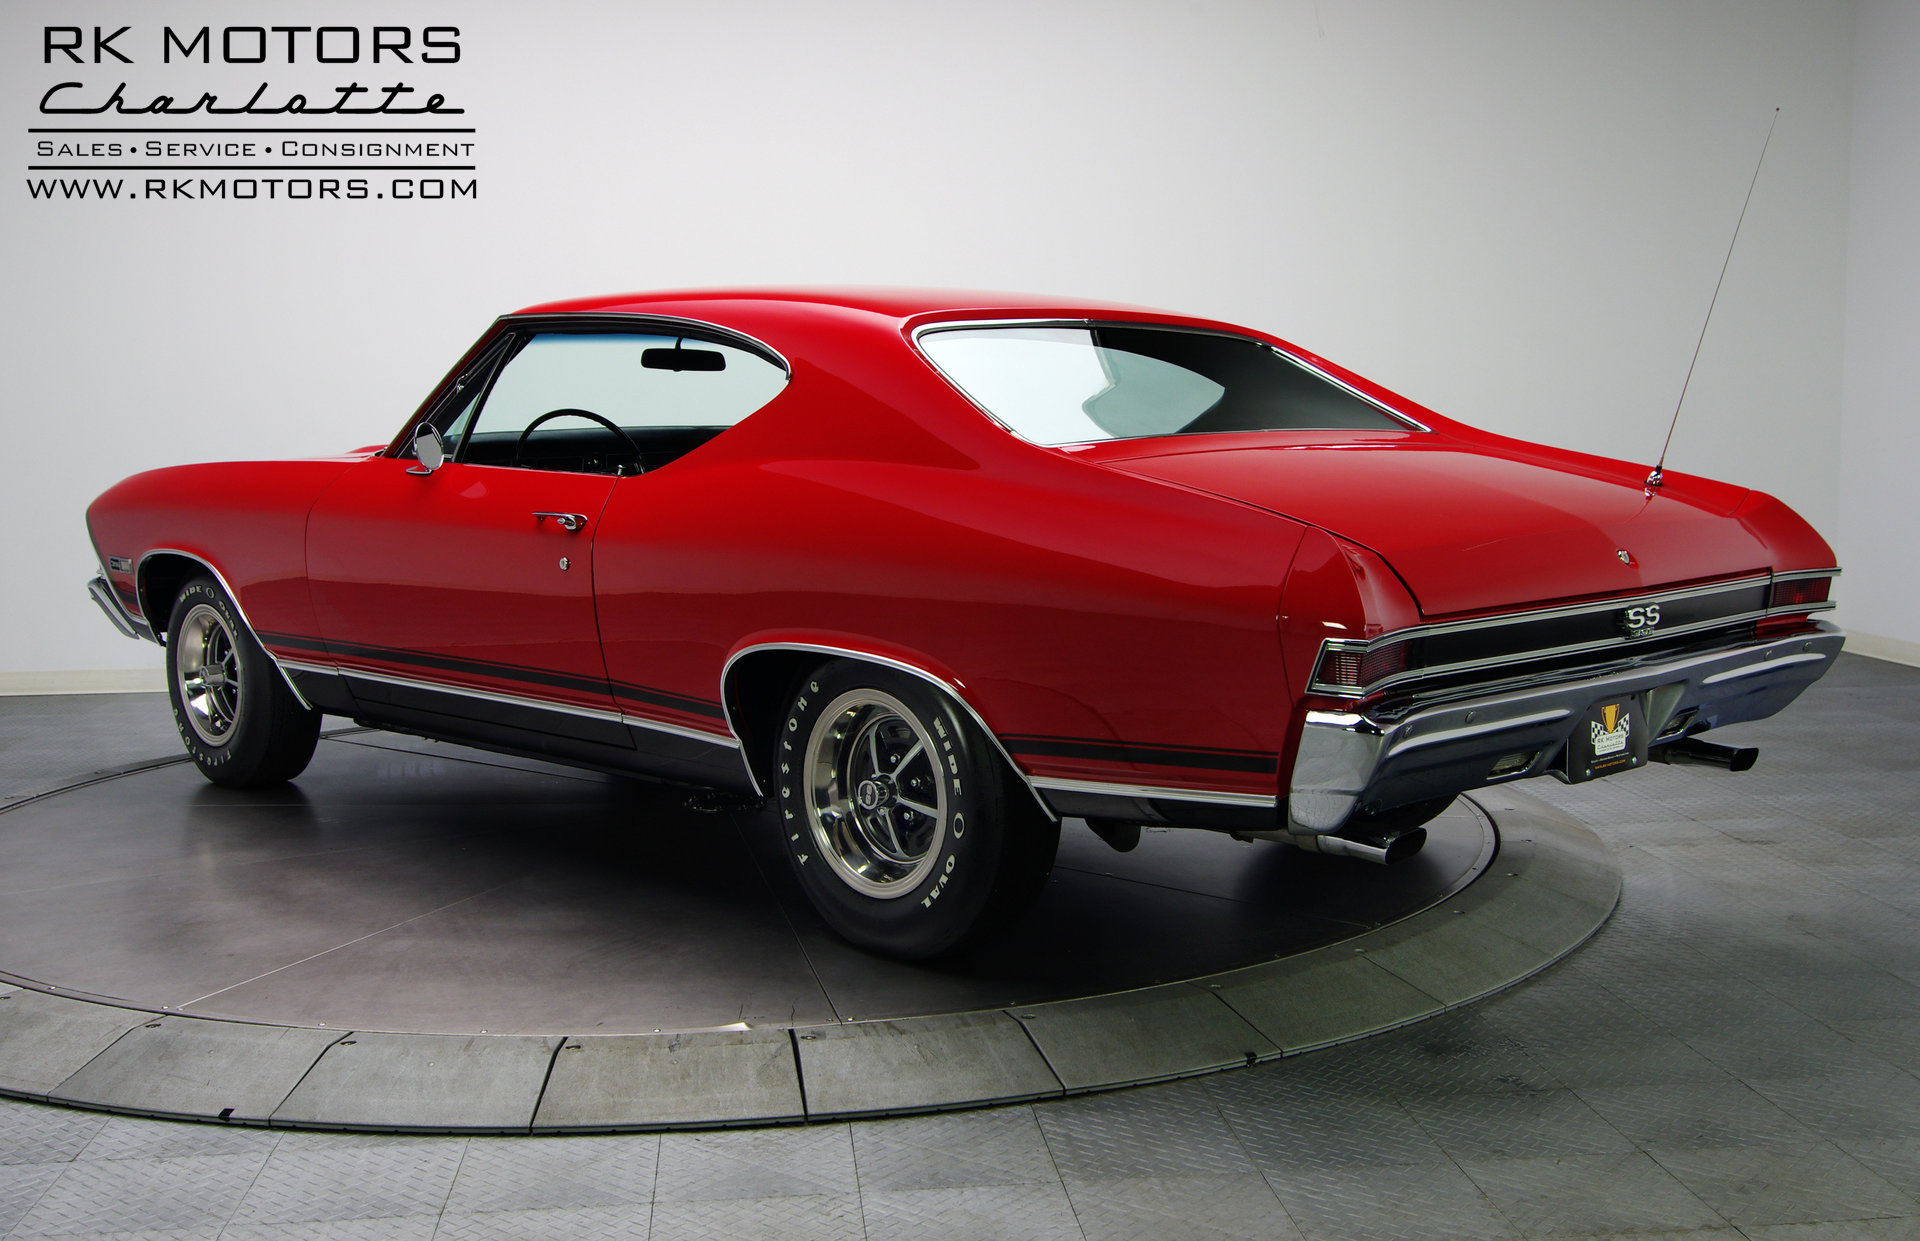 132785 1968 Chevrolet Chevelle Rk Motors Classic And Performance Chevy Ss Hello I Have A 64 That Ive For Sale